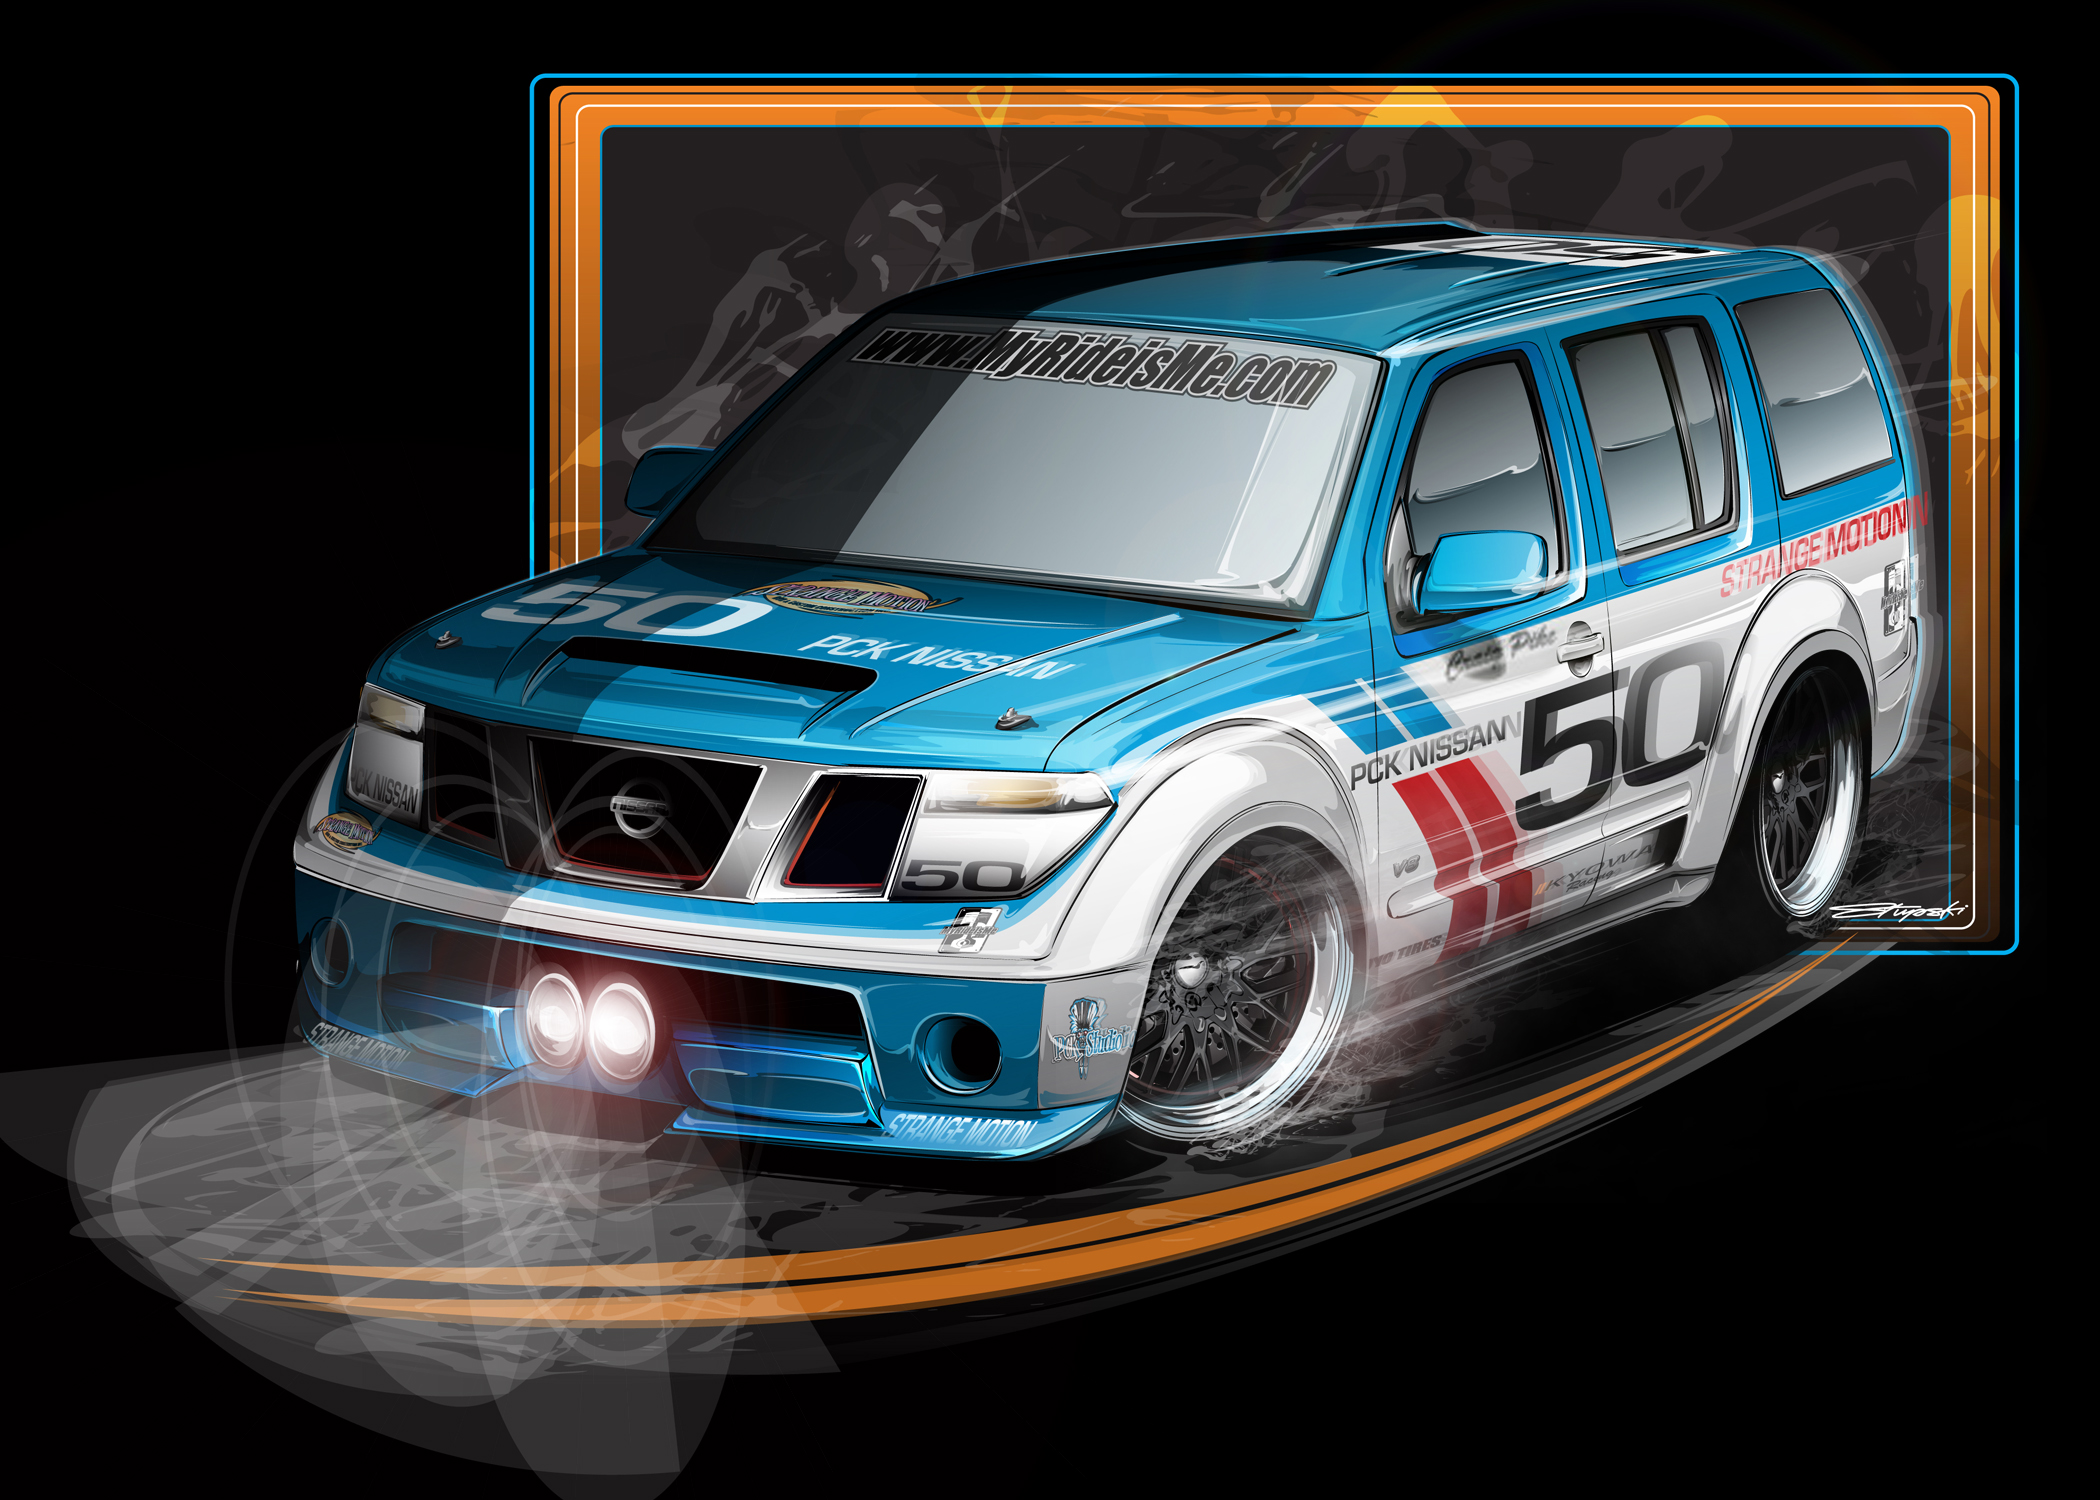 Nissan Pathfinder V8 done up like a Datsu 510 race car vintage